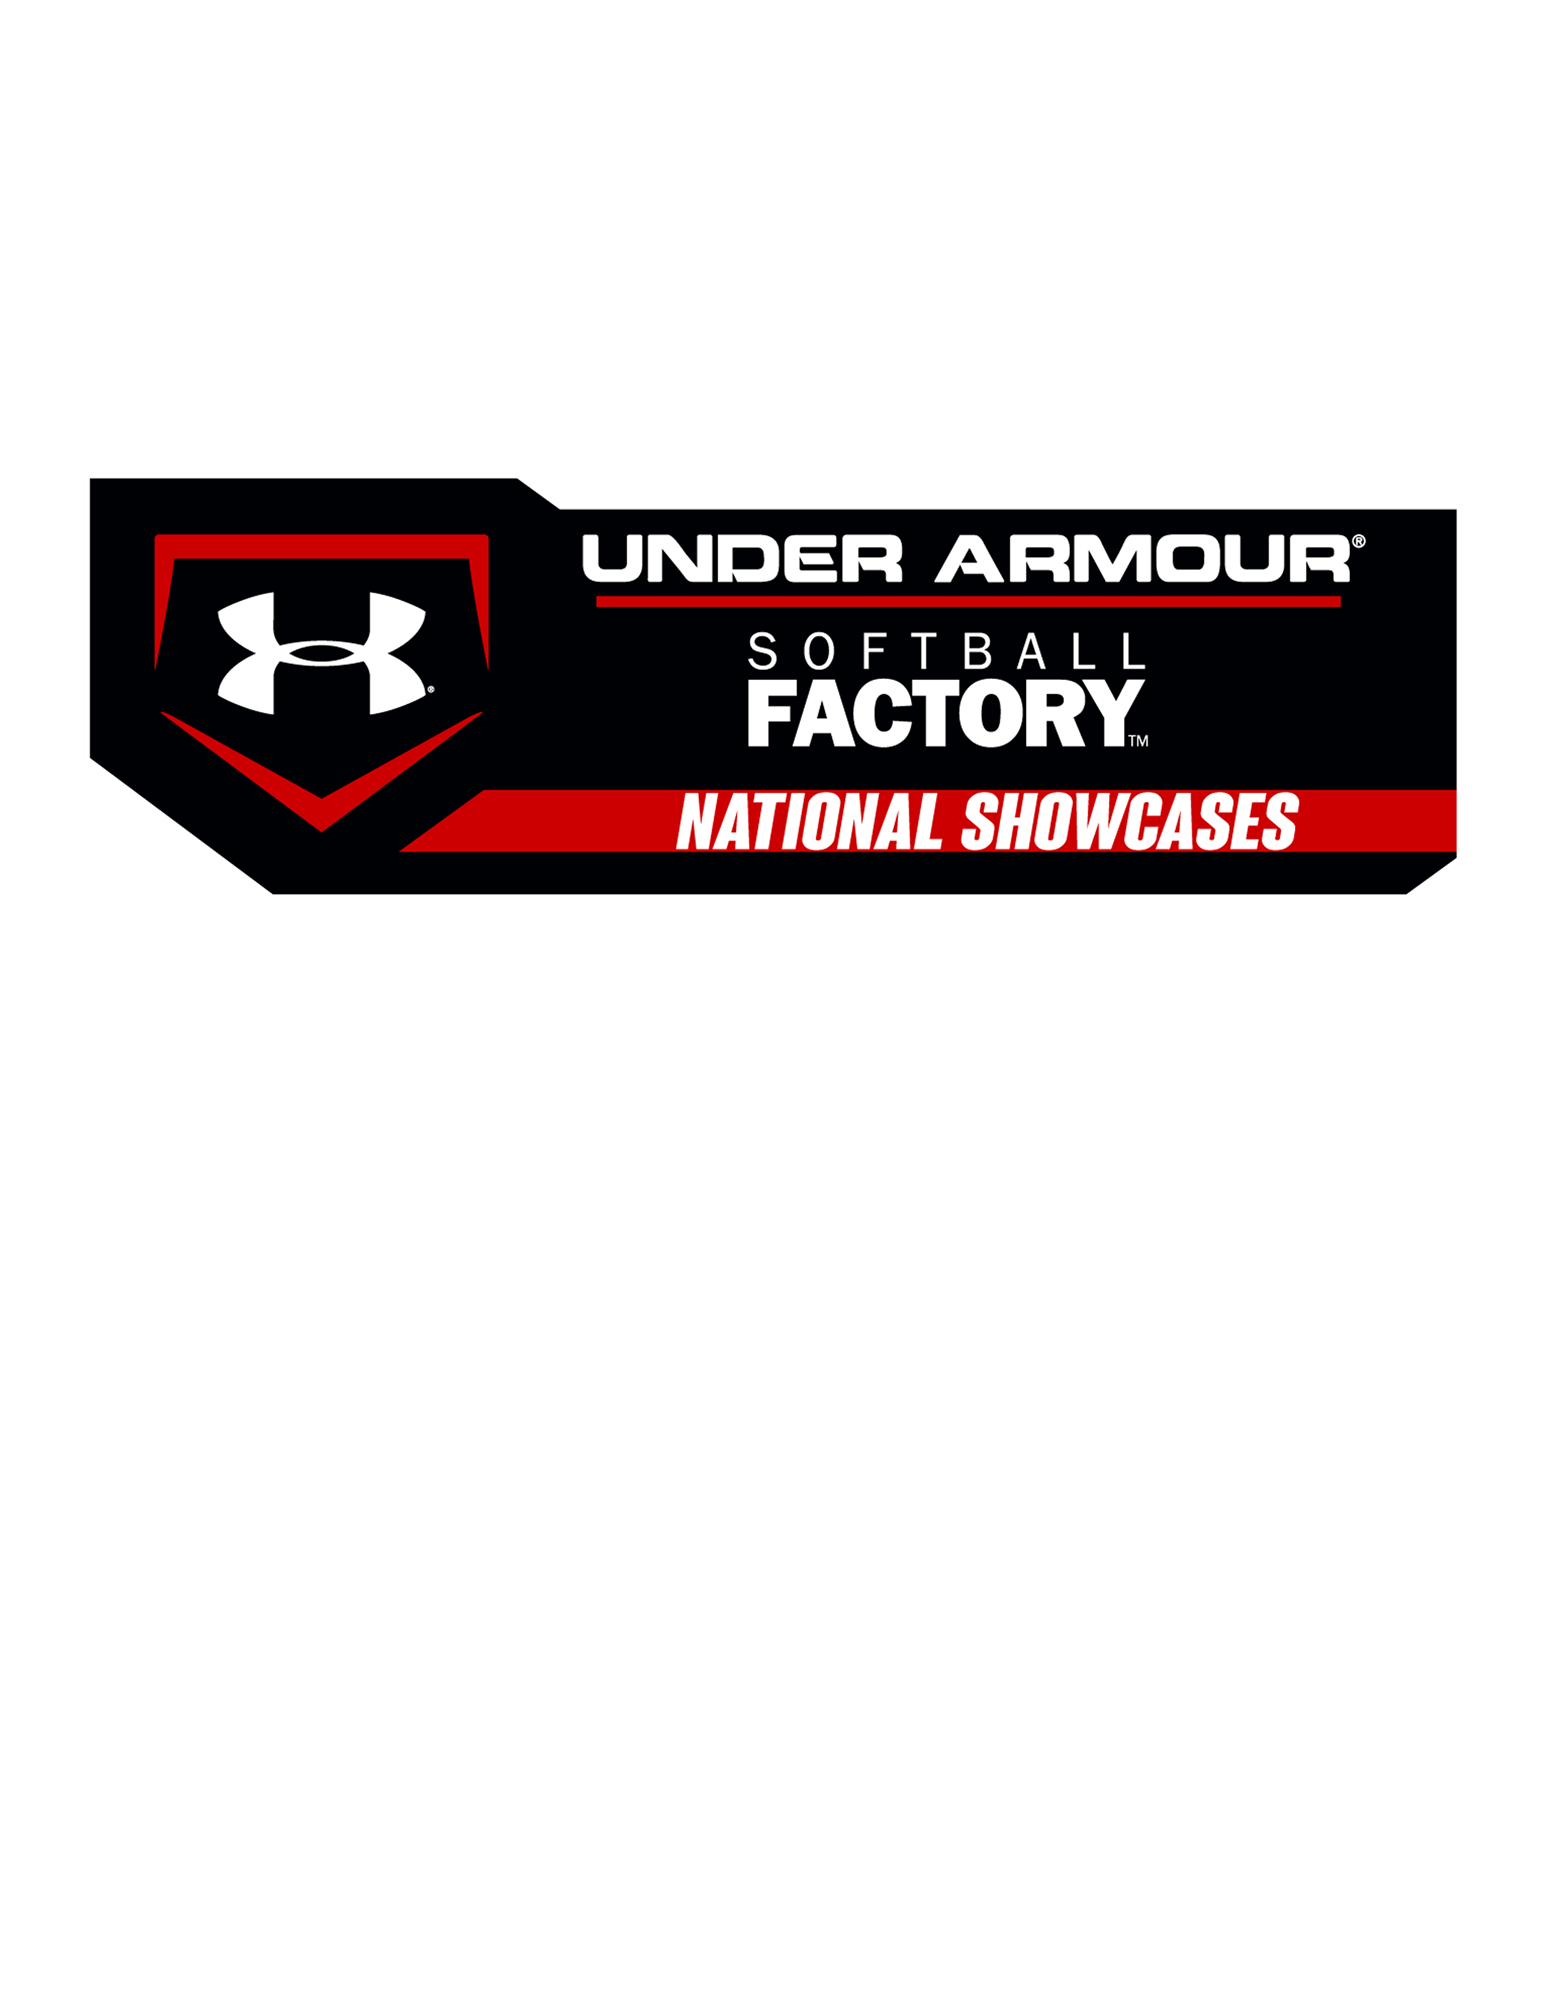 Softball Factory Under Armour Eastern Classic National Showcase